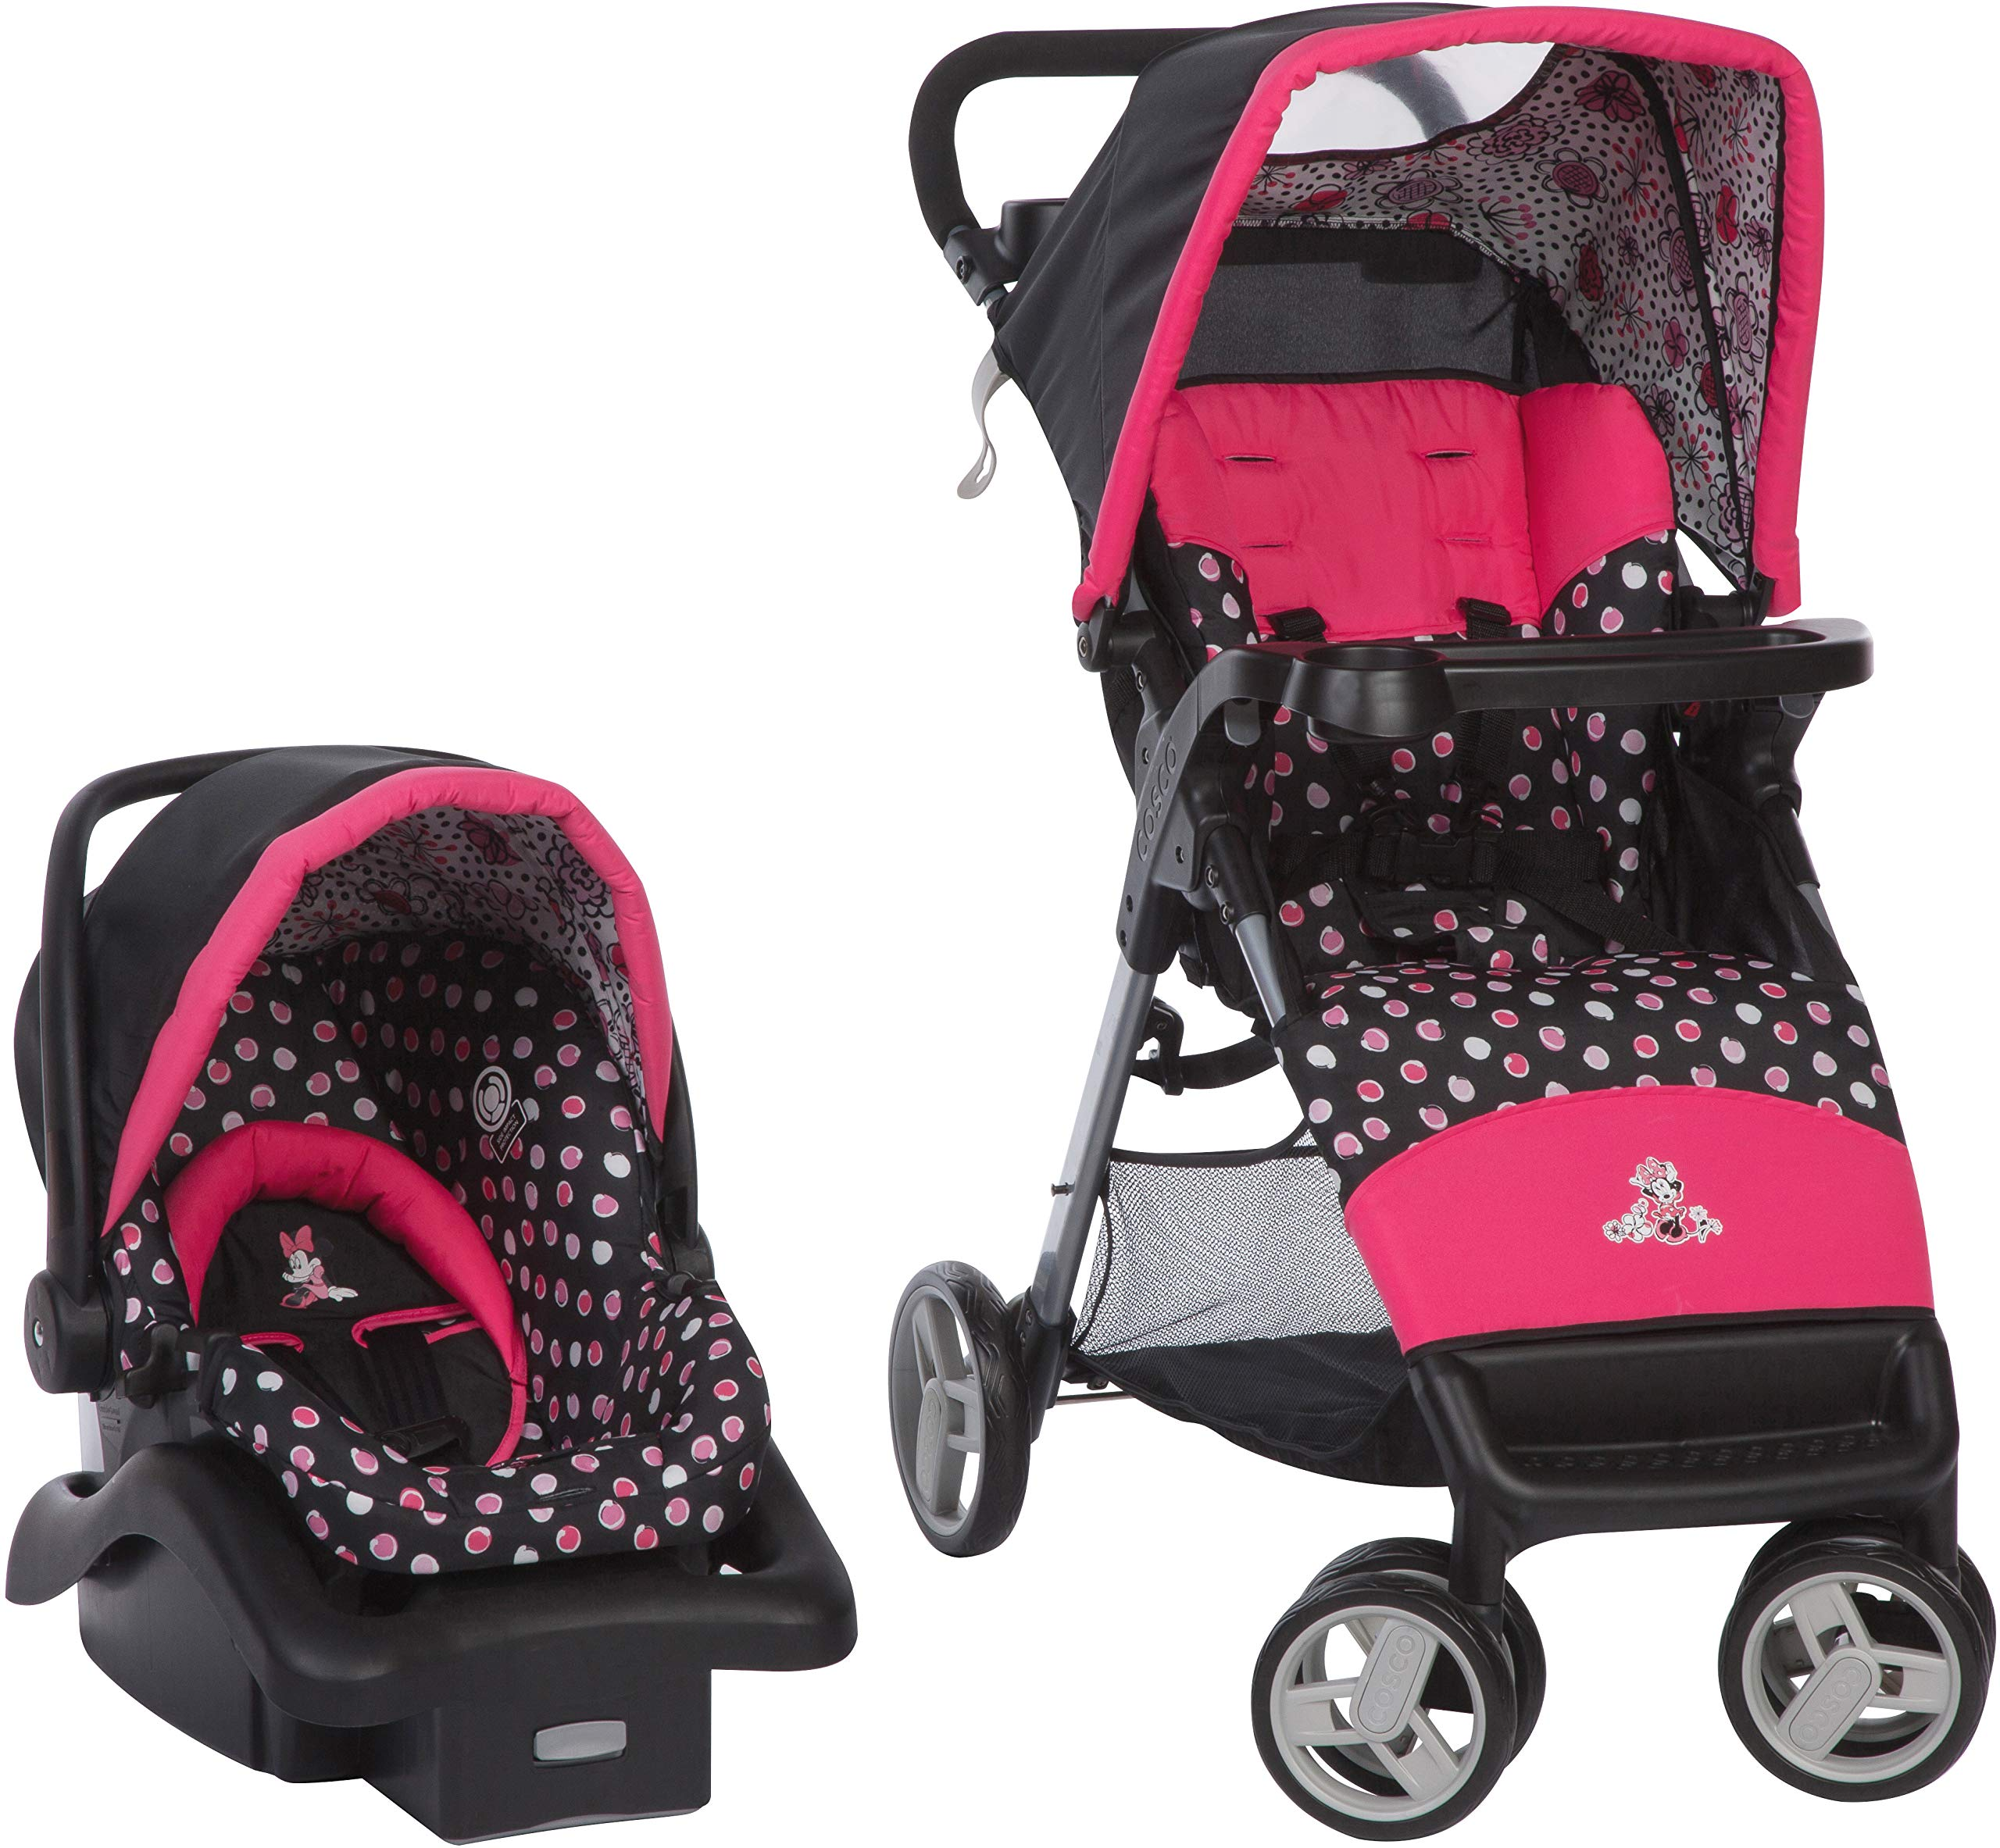 Disney Baby Simple Fold LX Travel System, Minnie Mash Up by Disney Baby